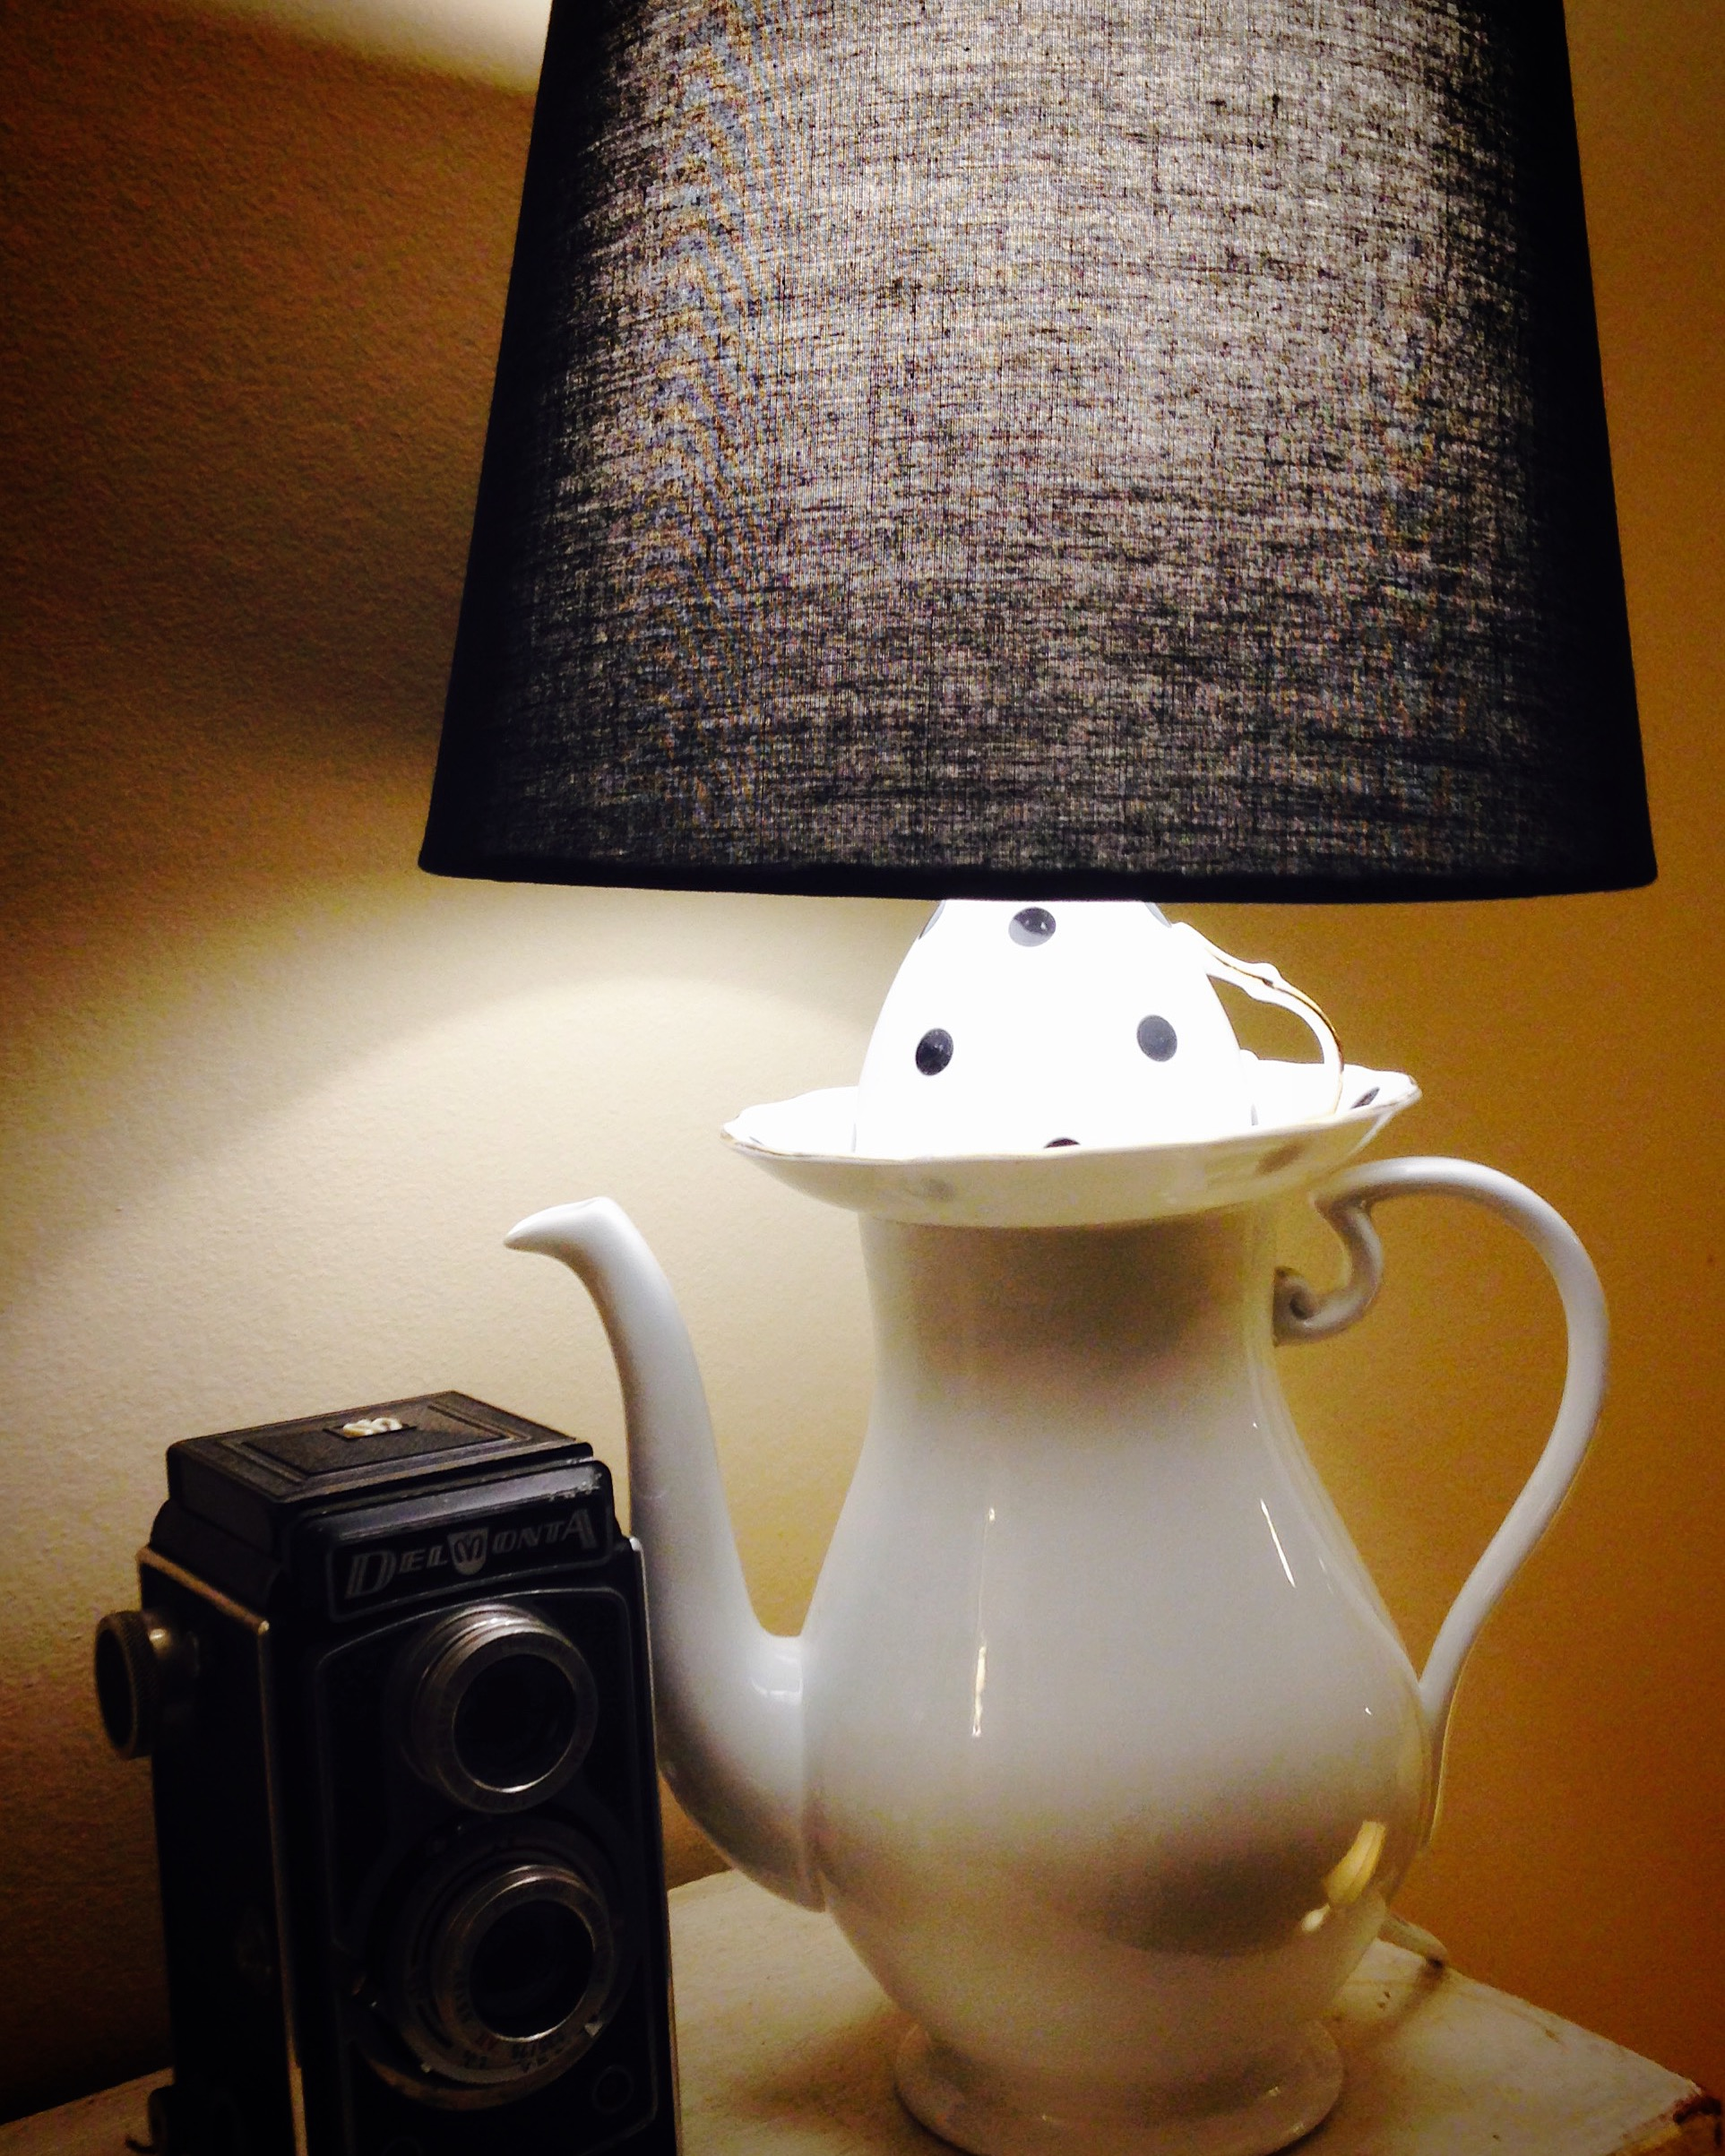 ** SOLD ** Spotted lamp